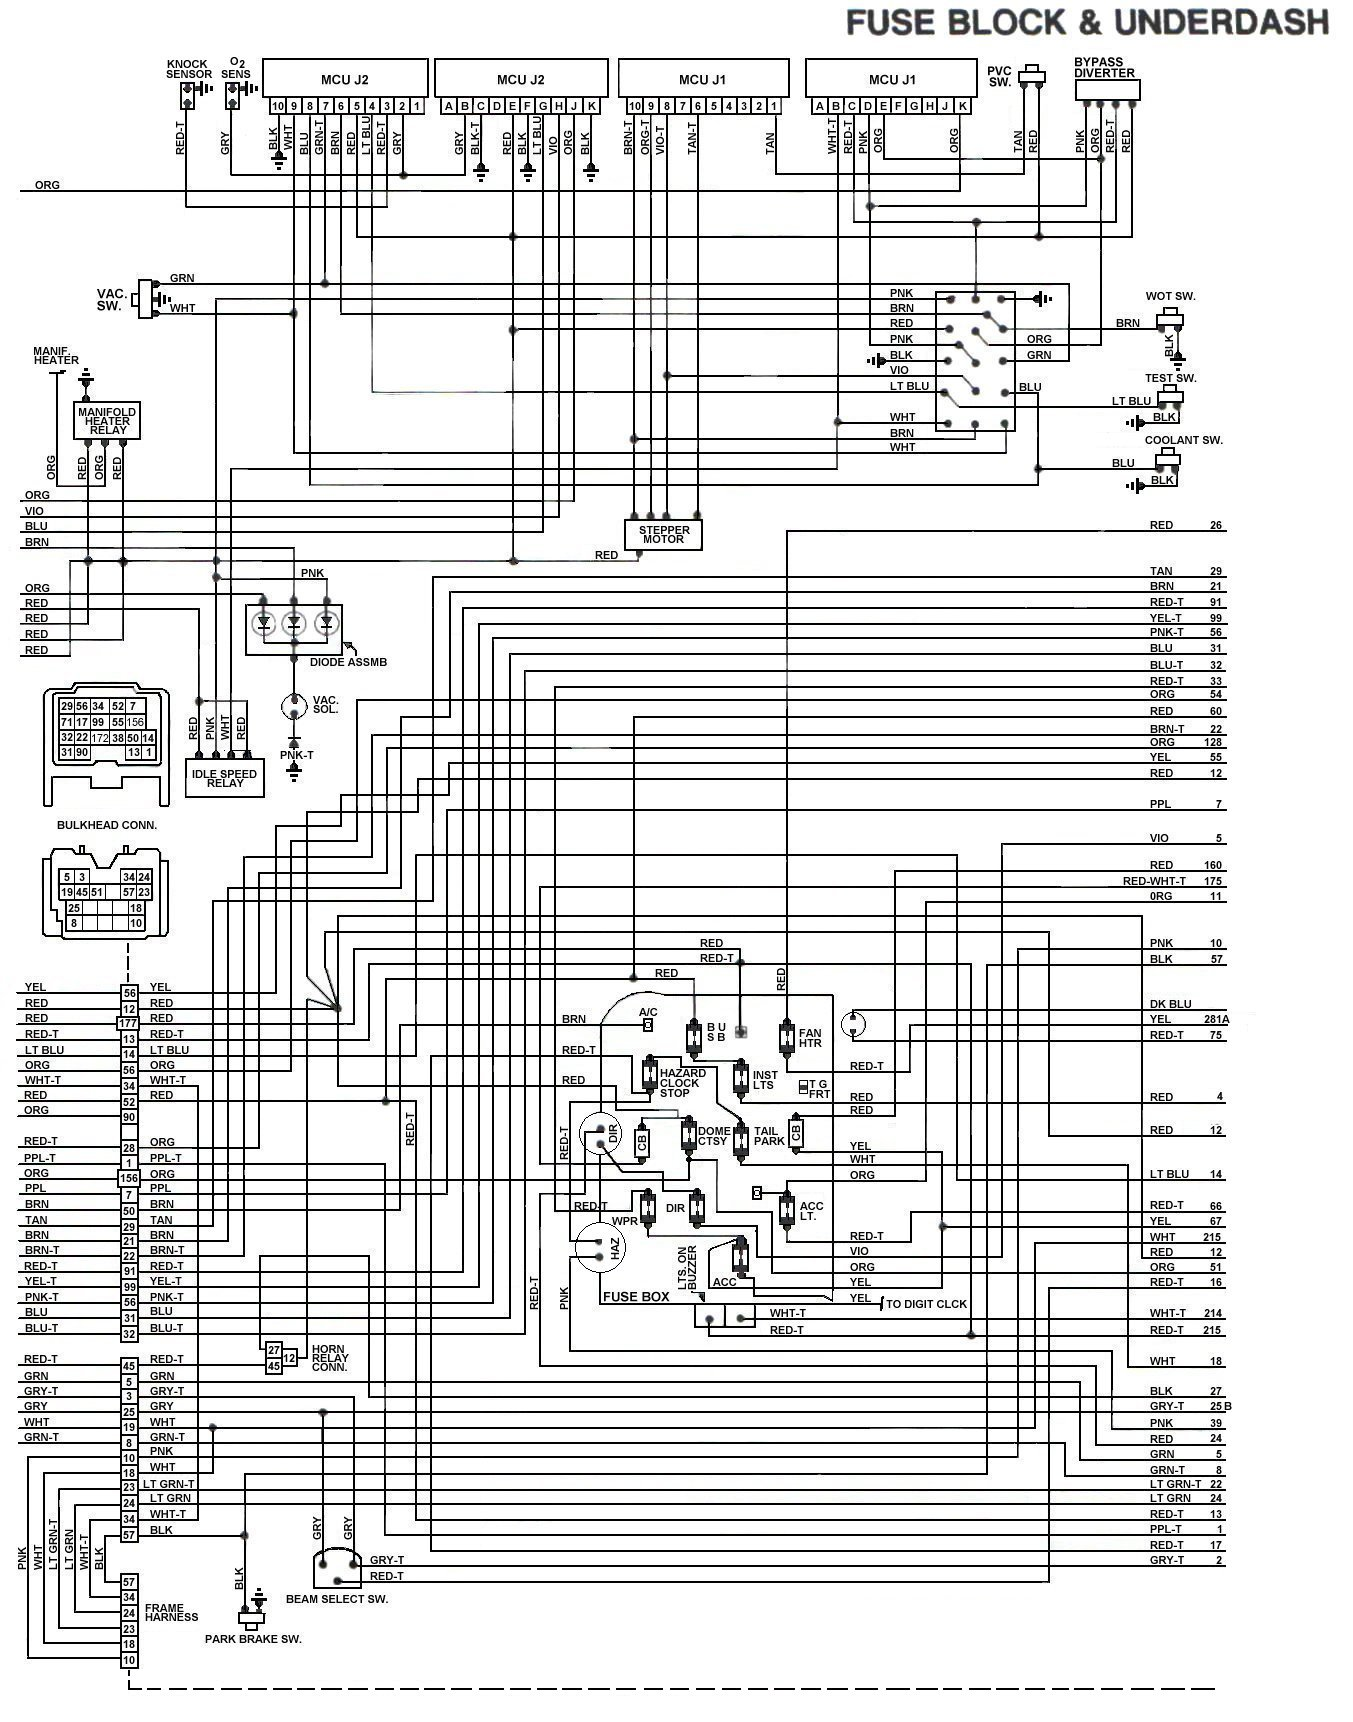 83_FSJ_WiringDiagram_FuseBlock Underdash tom 'oljeep' collins fsj wiring page  at bayanpartner.co